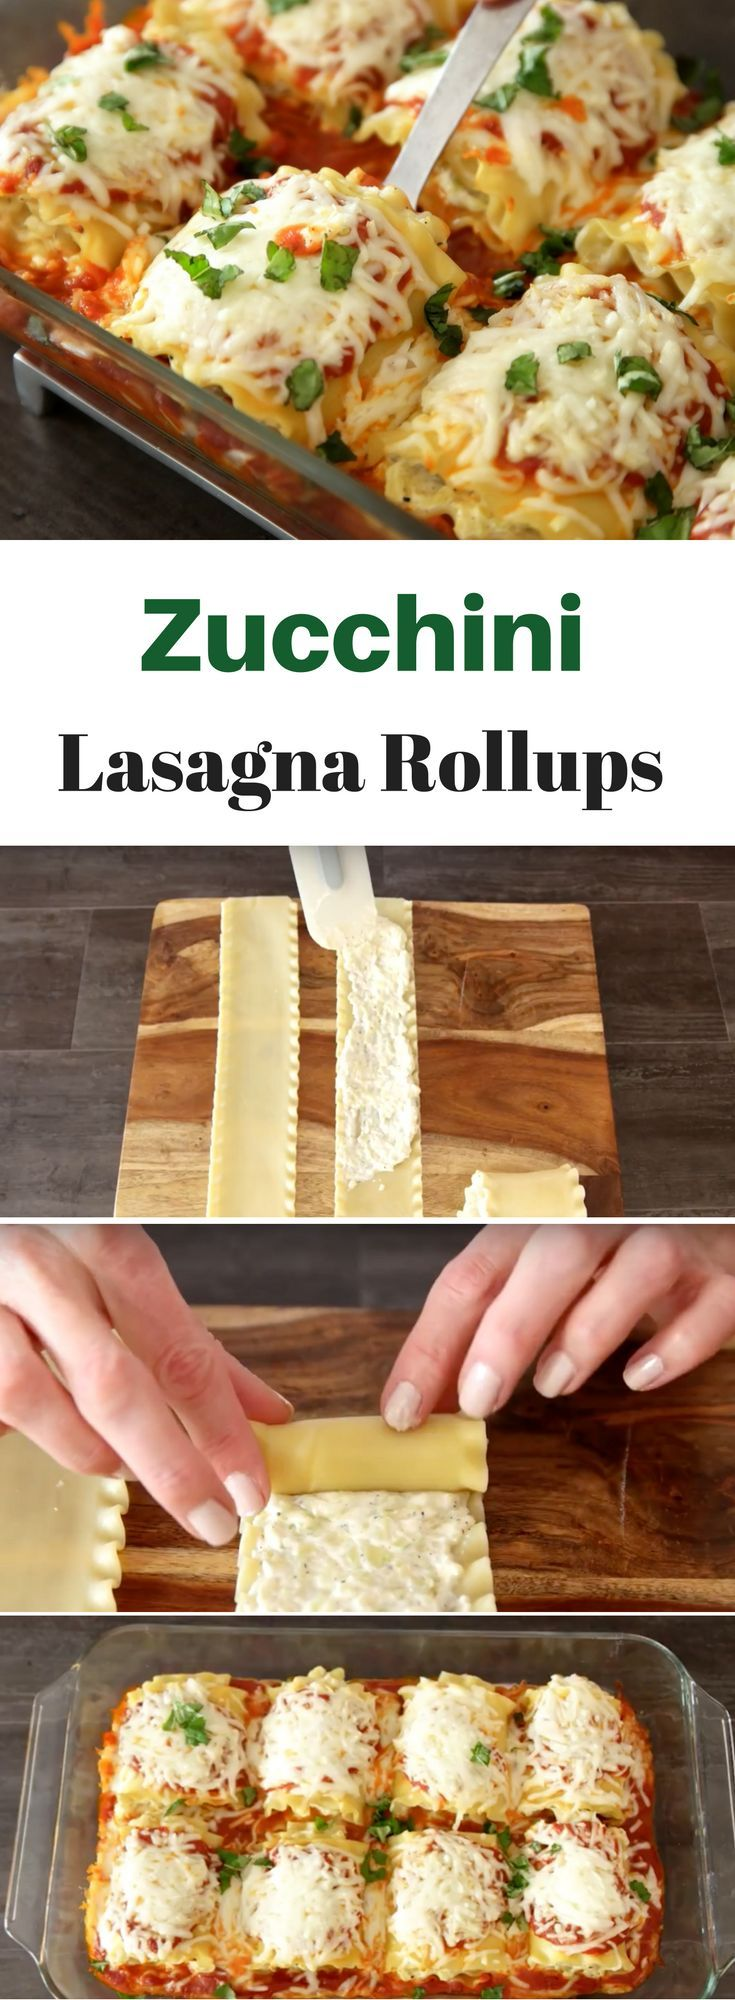 A different way to eat lasagna - these easy Zucchini Lasagne Rolls have the flavors of zucchini, 3 cheeses and marinara